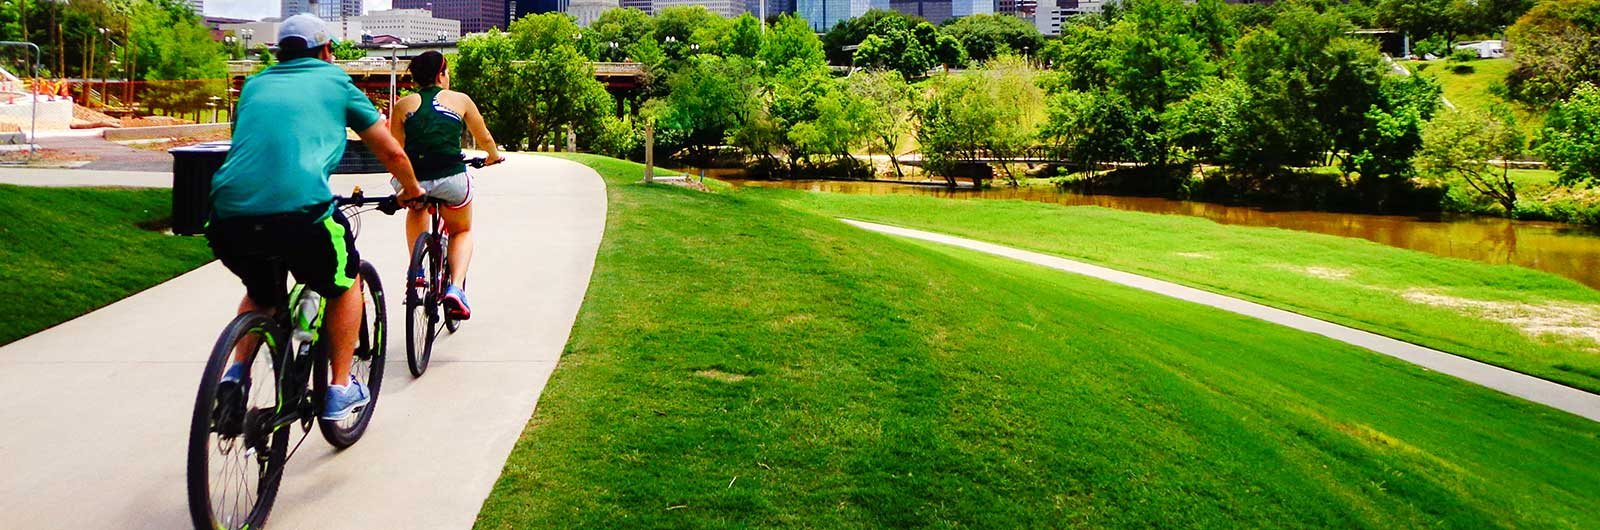 houston commercial landscaping